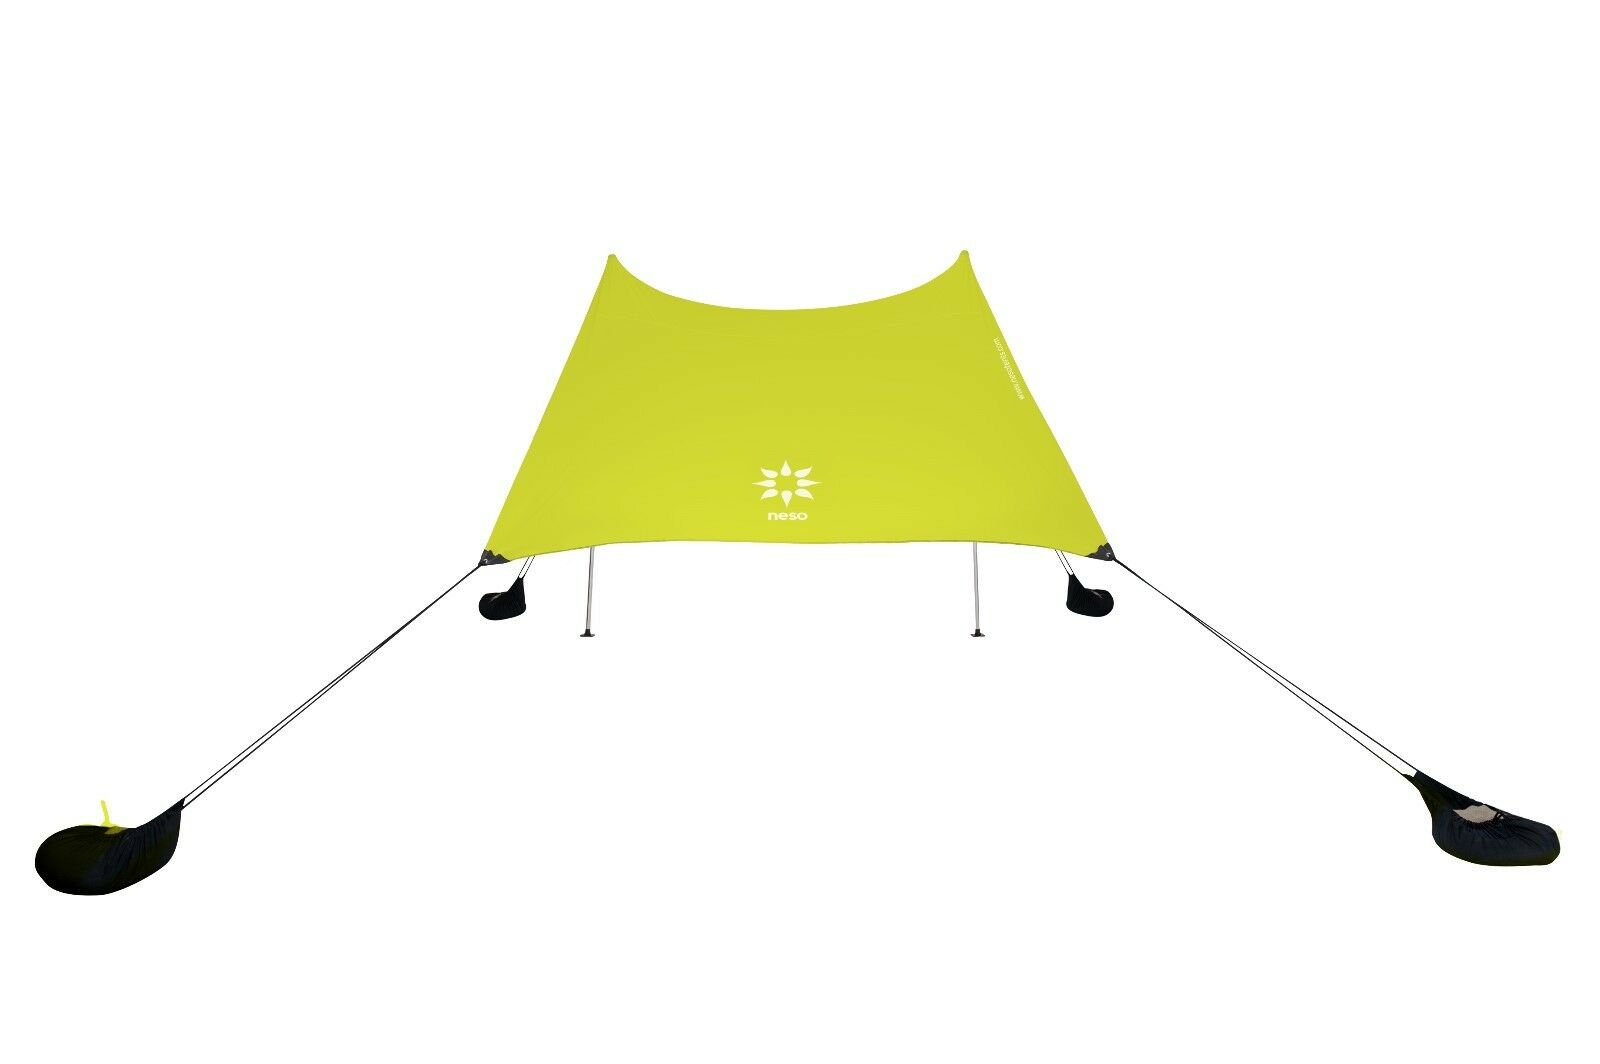 Neso Tents Beach Tent with Sand Anchor,  Portable Canopy Sun Shelter (Lemon)  for cheap